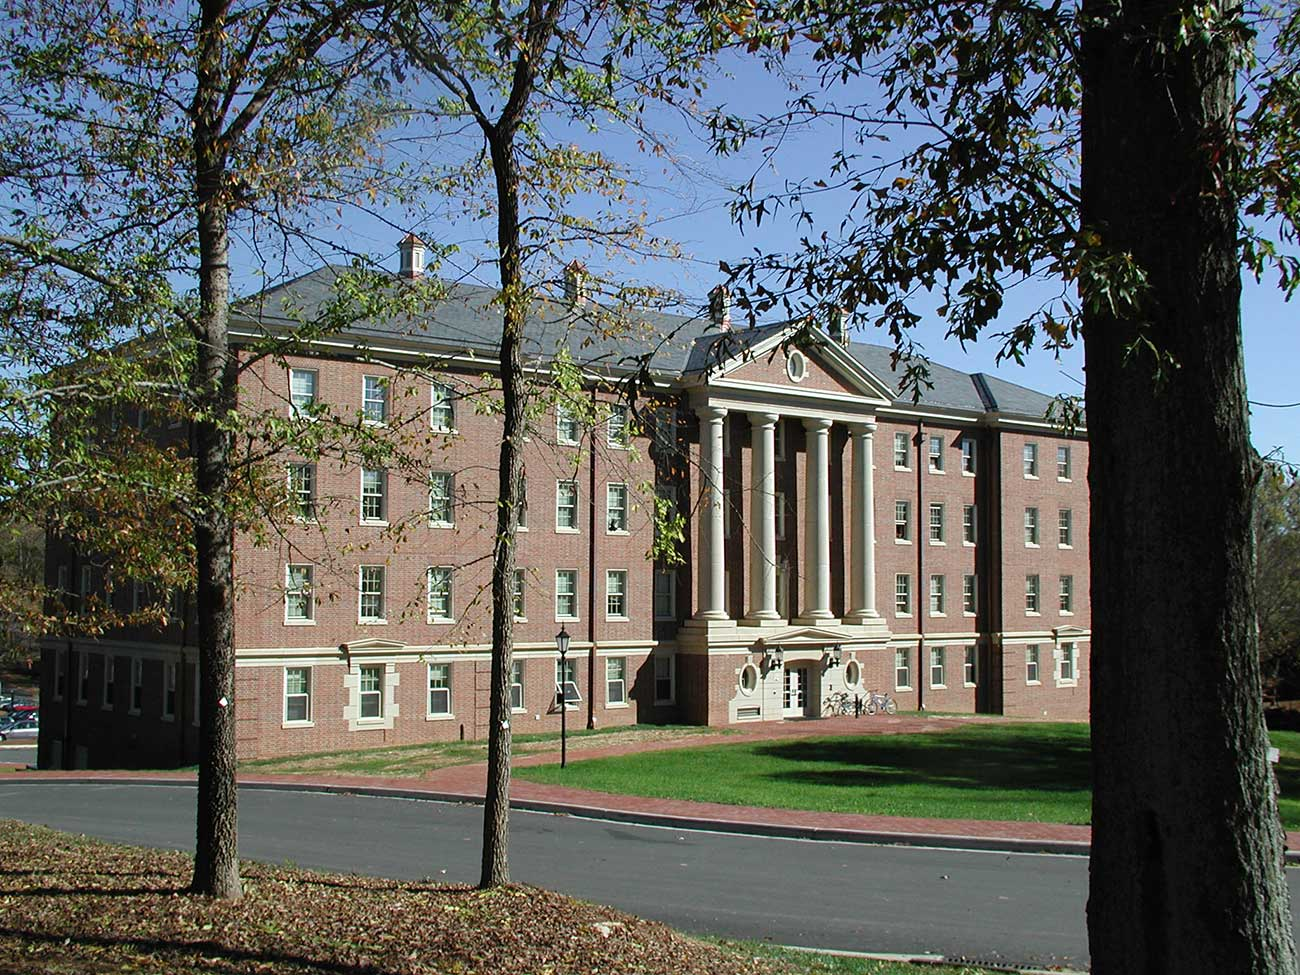 Davidson College is now offering a free intensive coding course to students and recent graduates